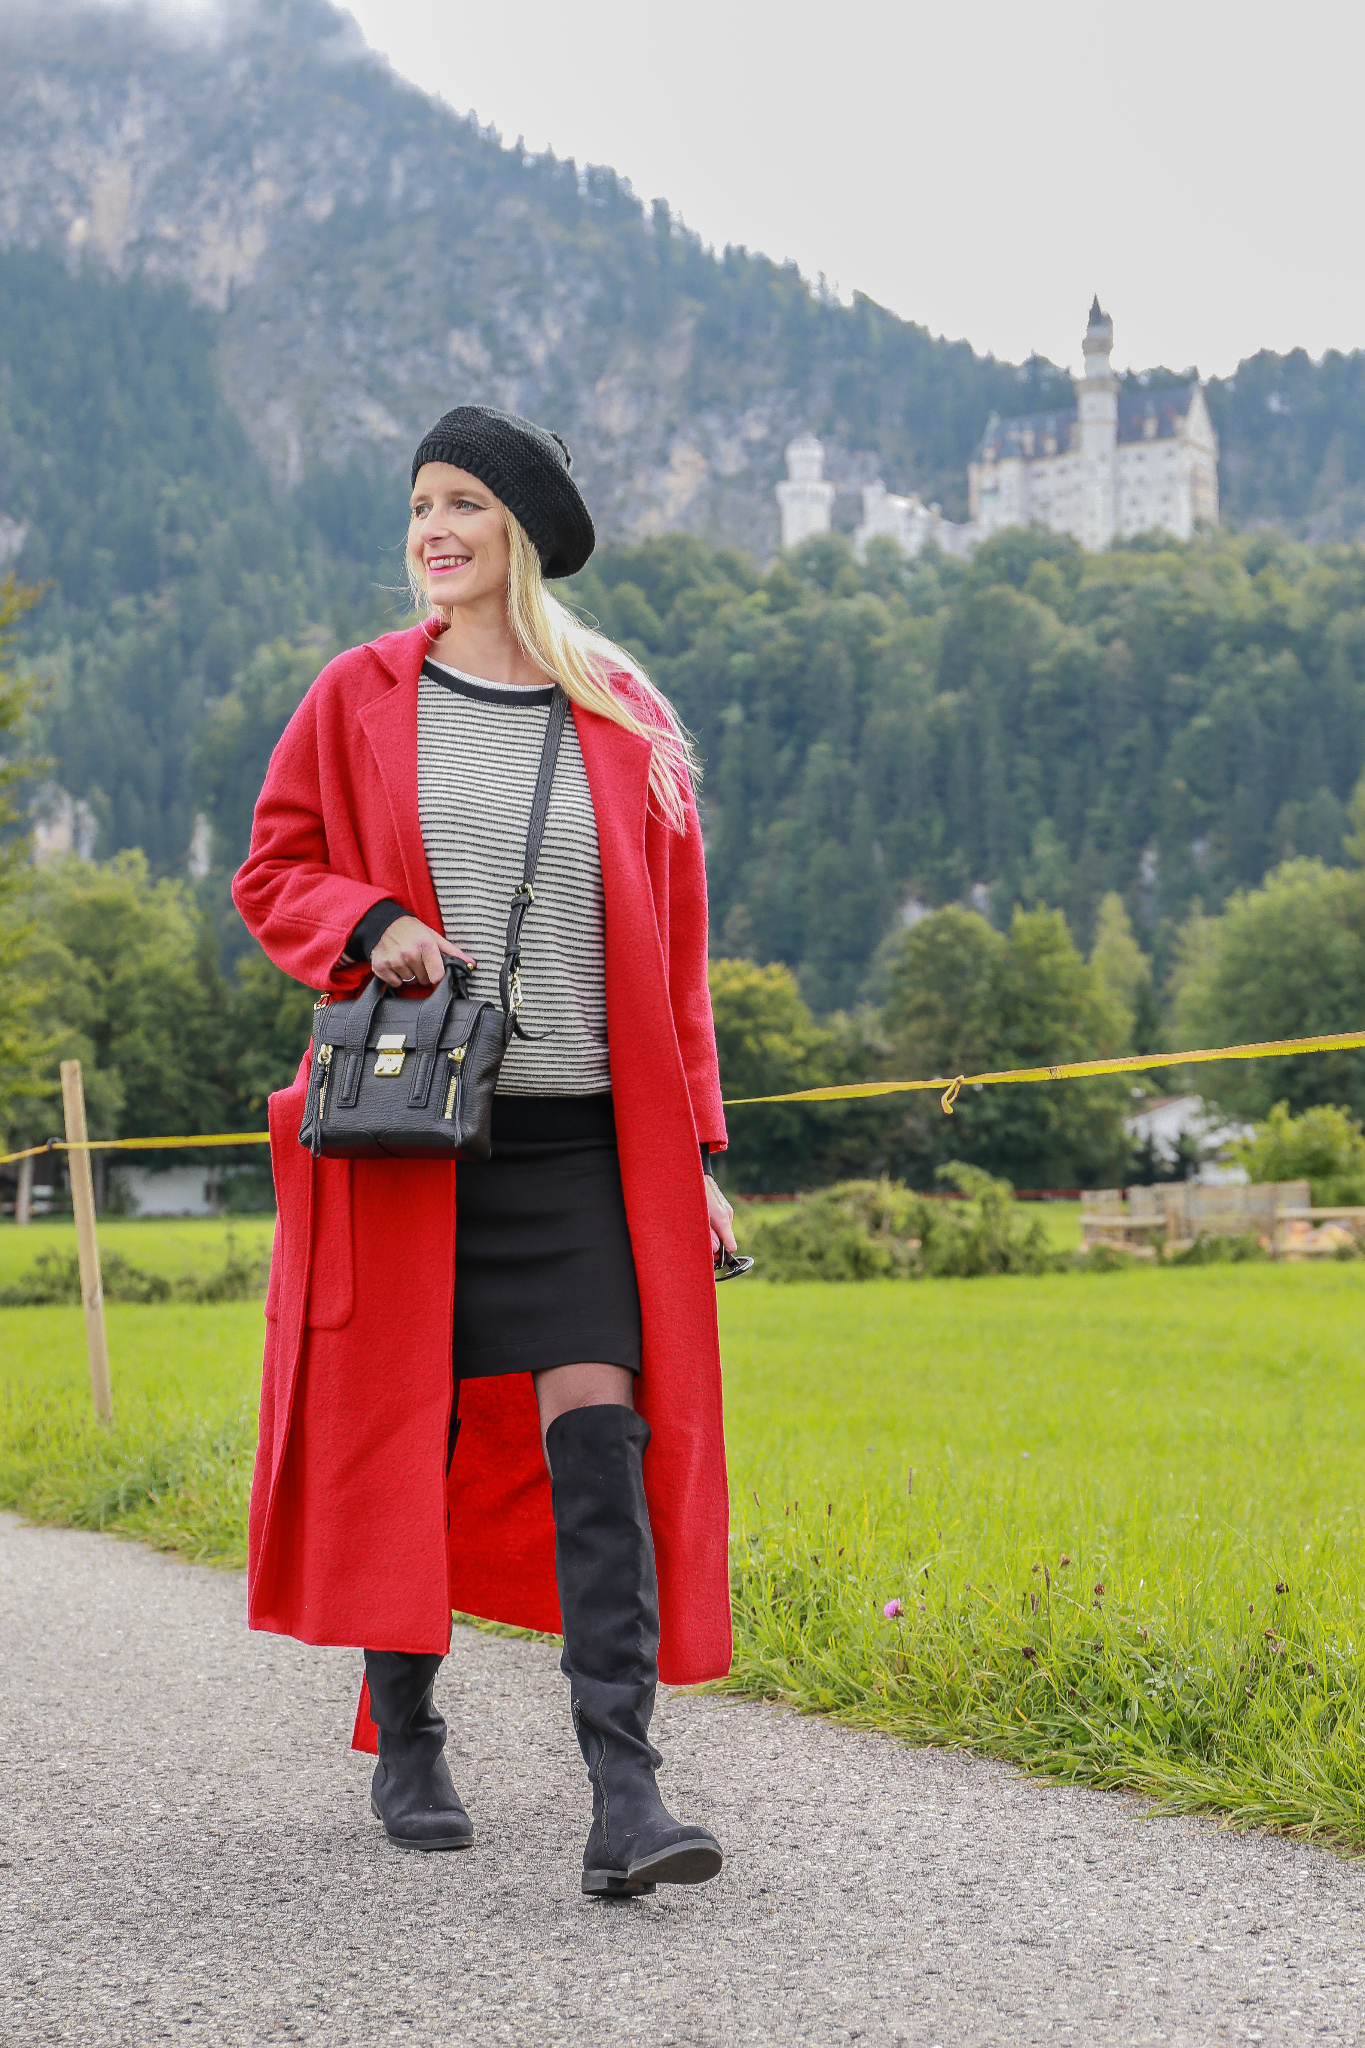 Fashion_Outfit_Red_Riding_Hood-26